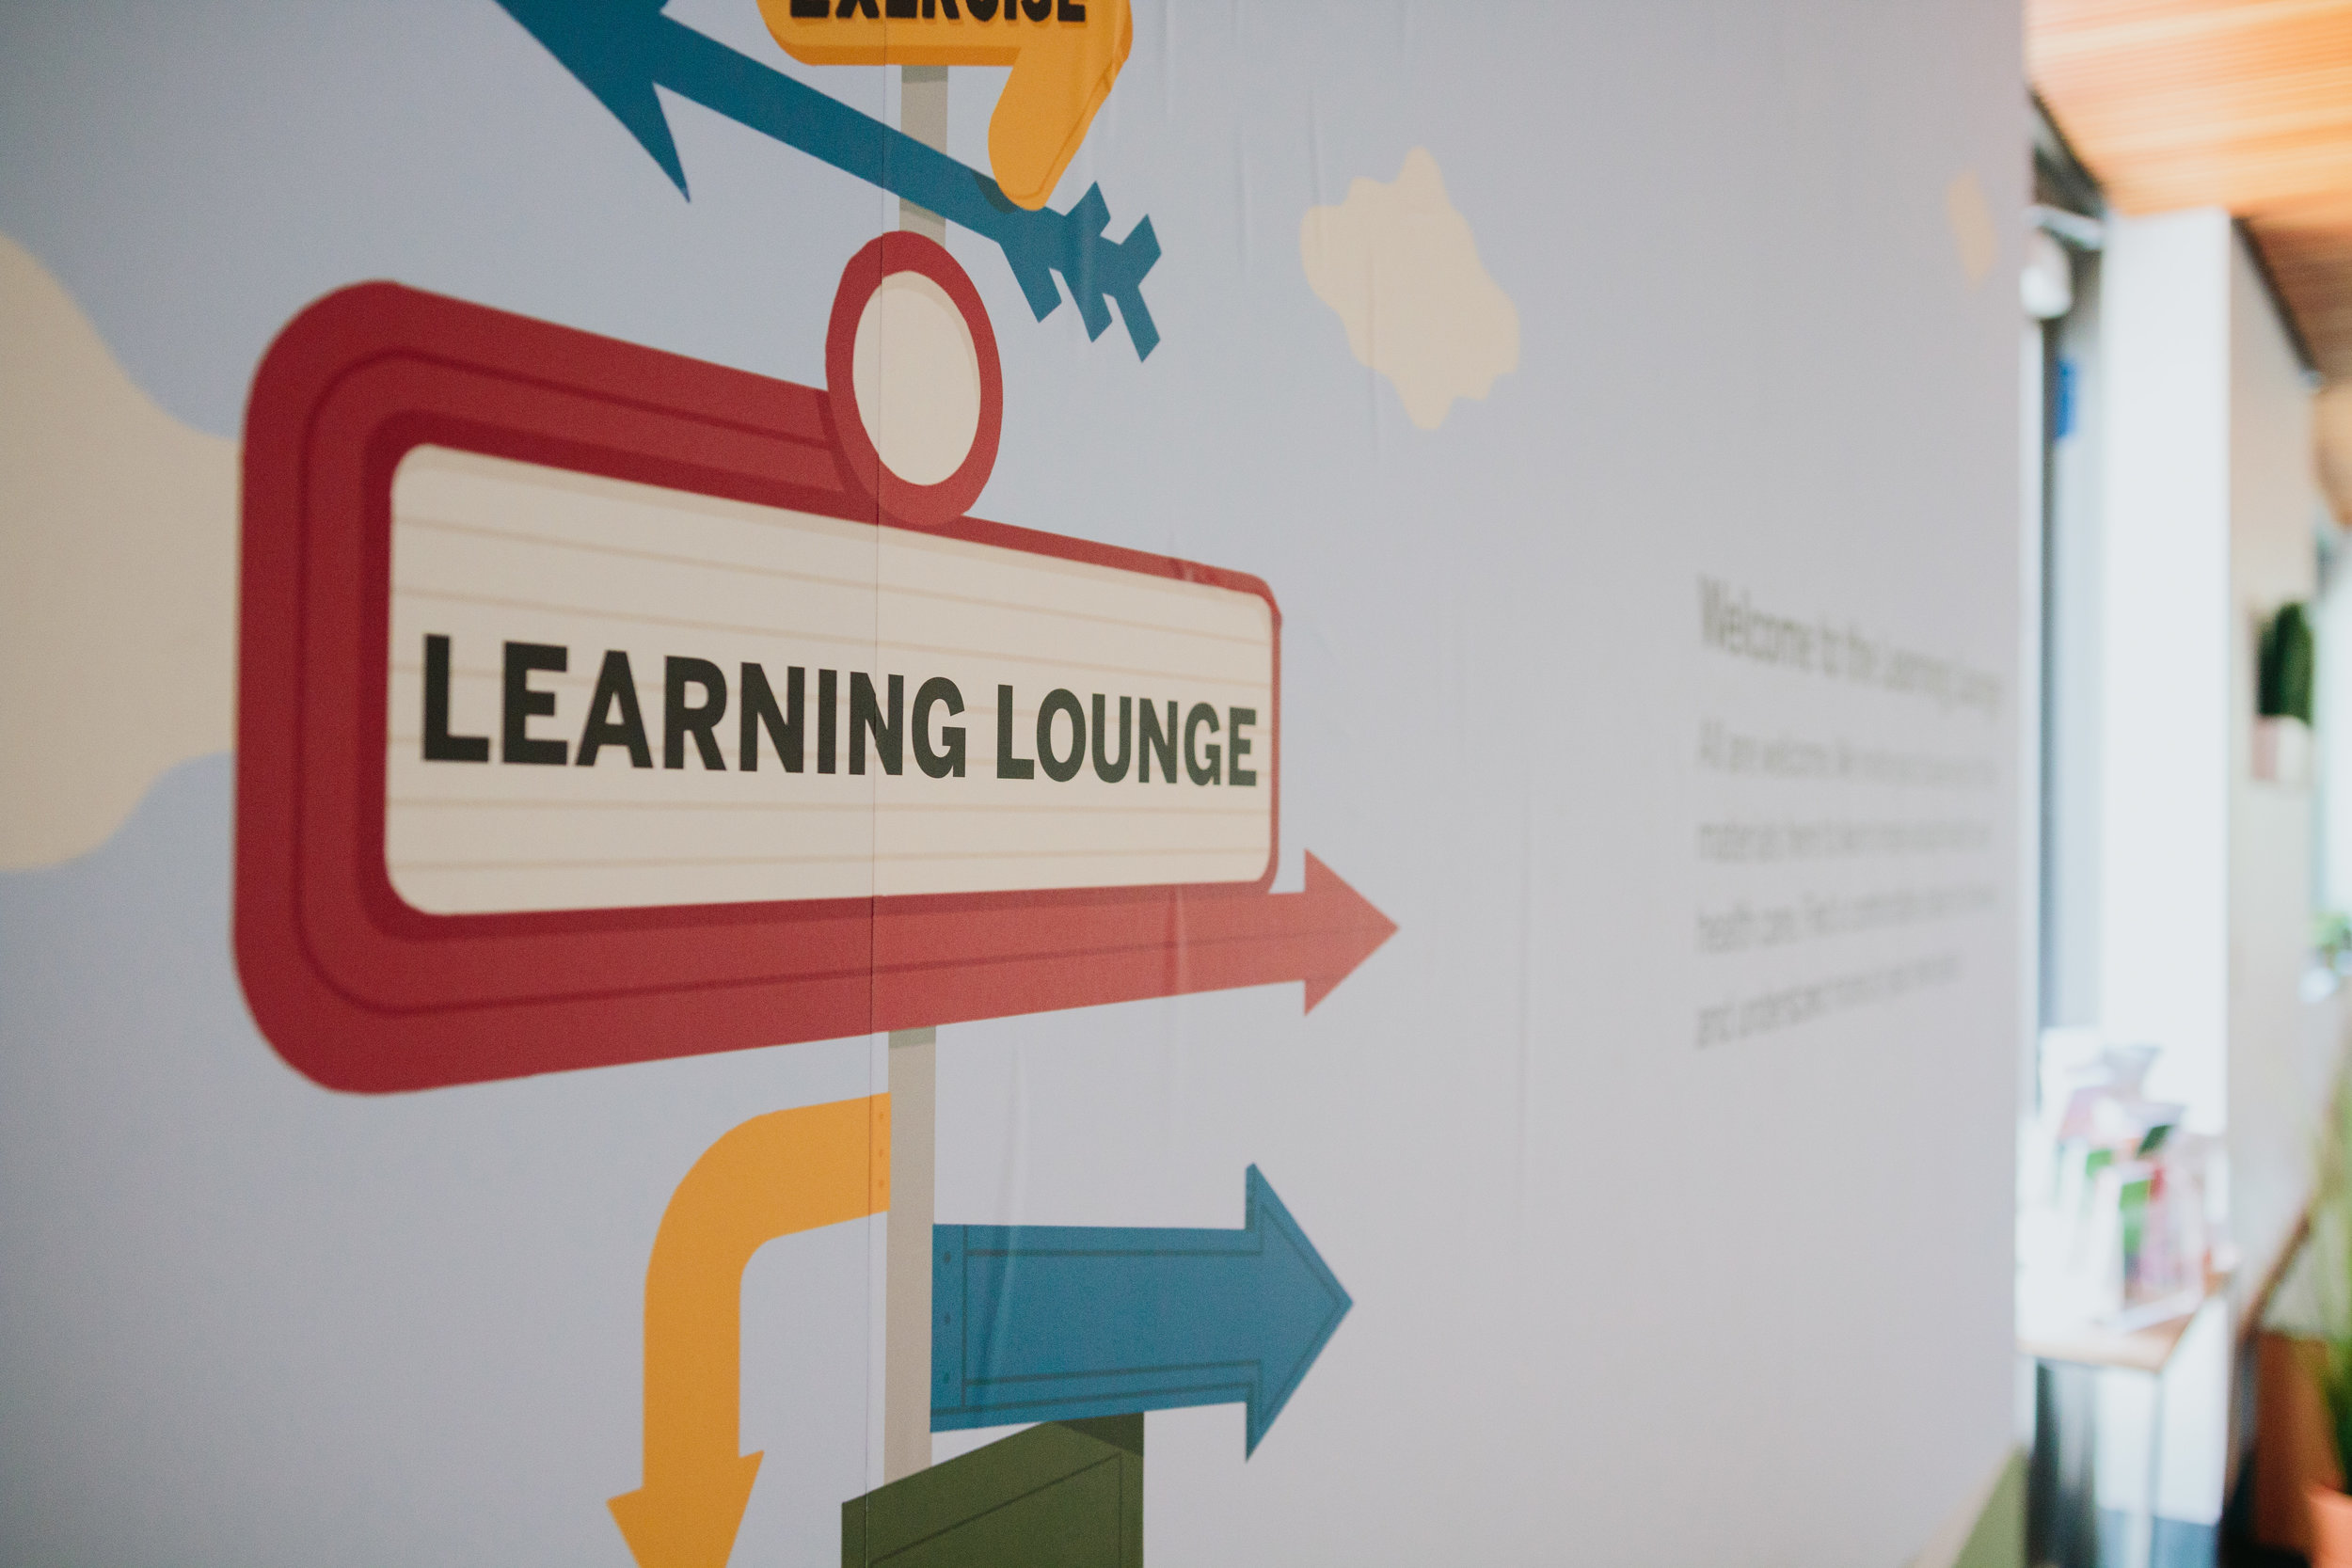 LearningLounge-04.2019-29.jpg